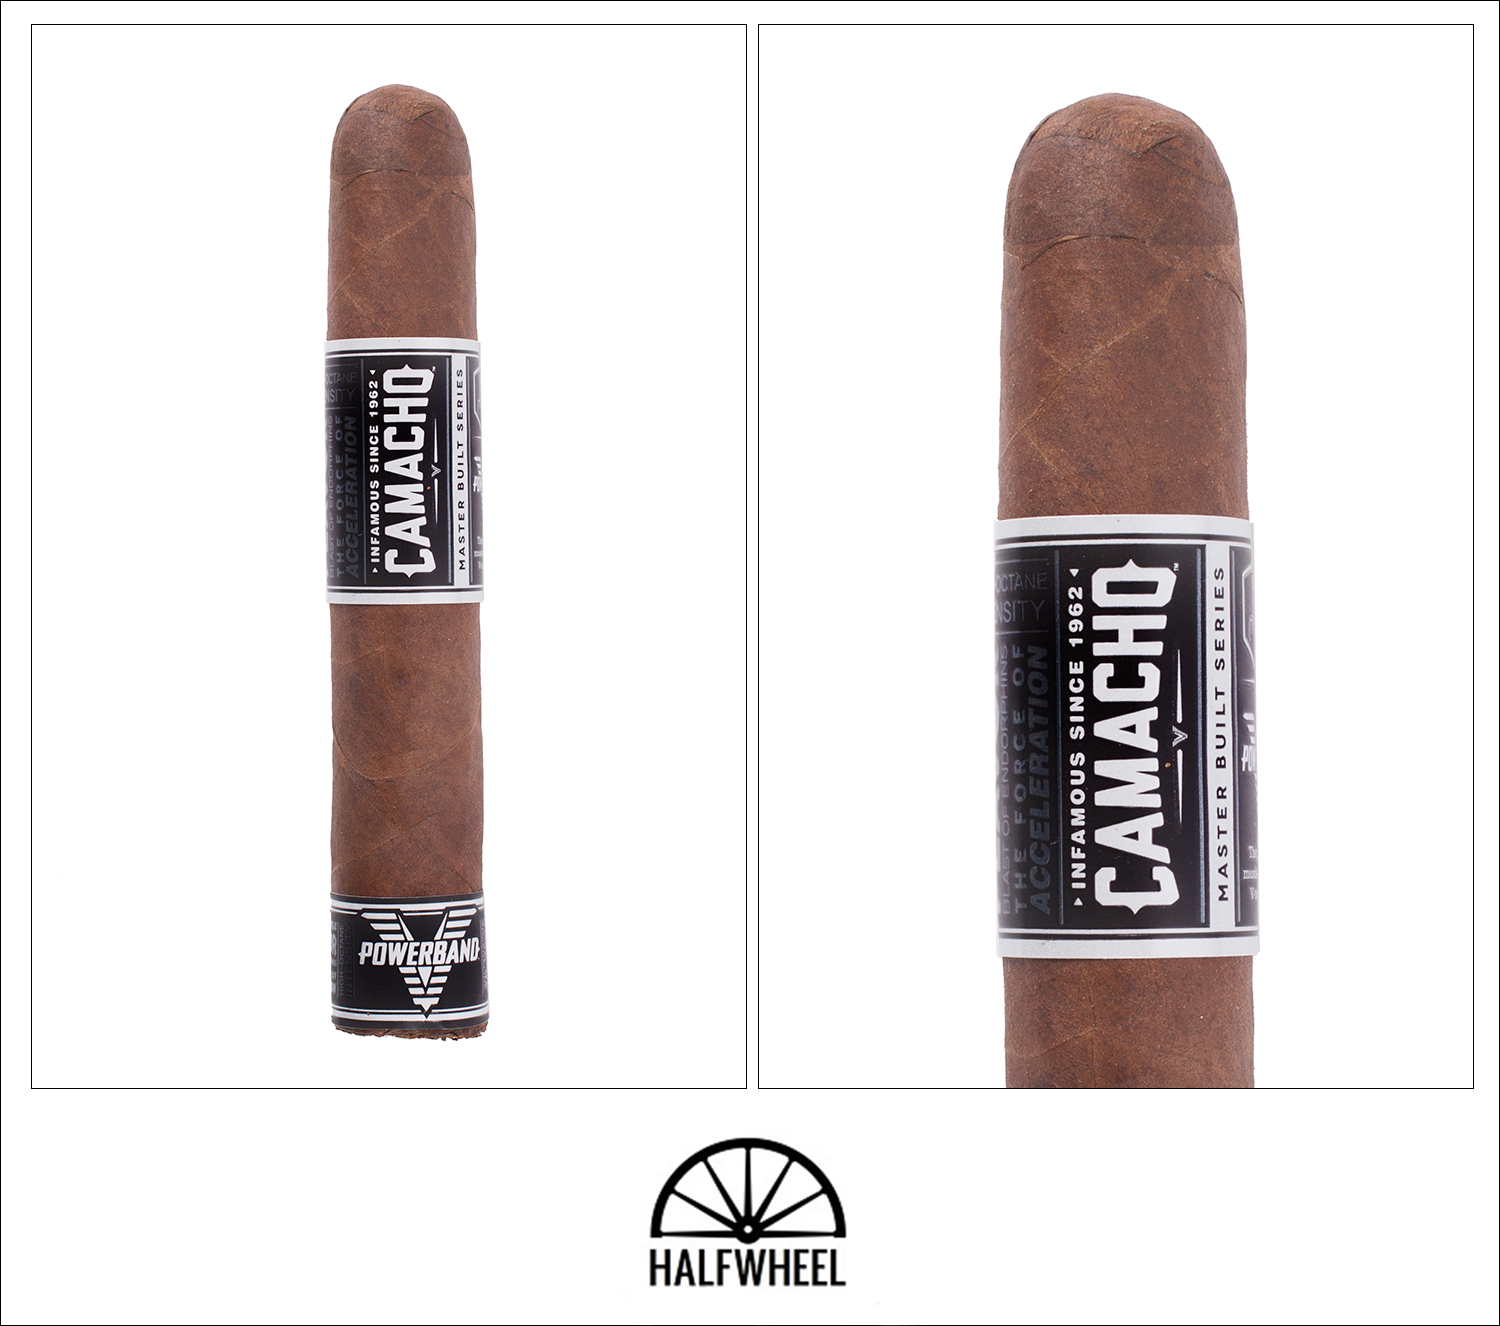 Camacho Powerband Robusto 1